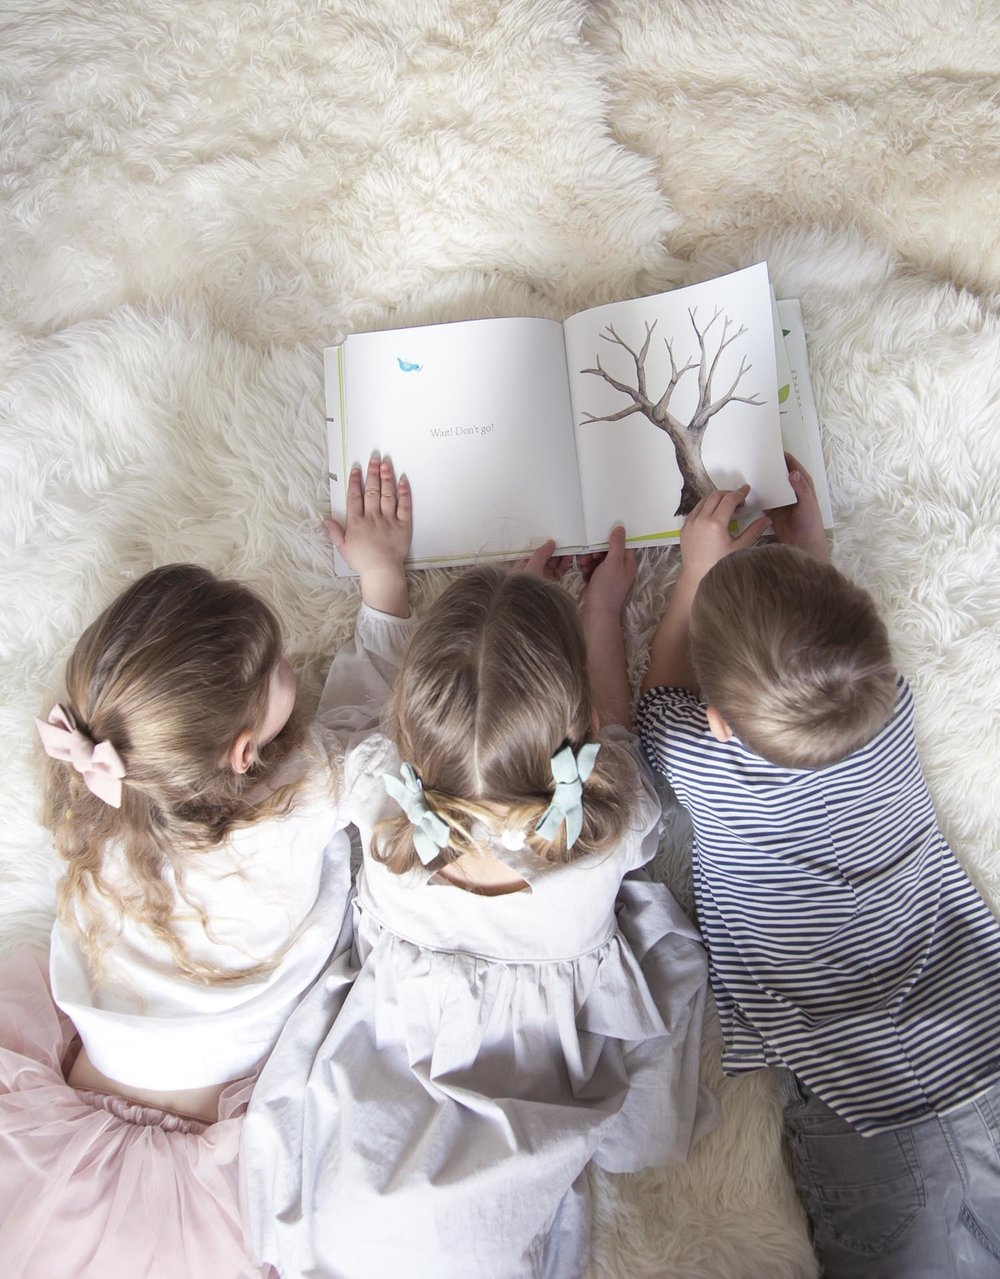 Kids reading Tap the Magic Tree together